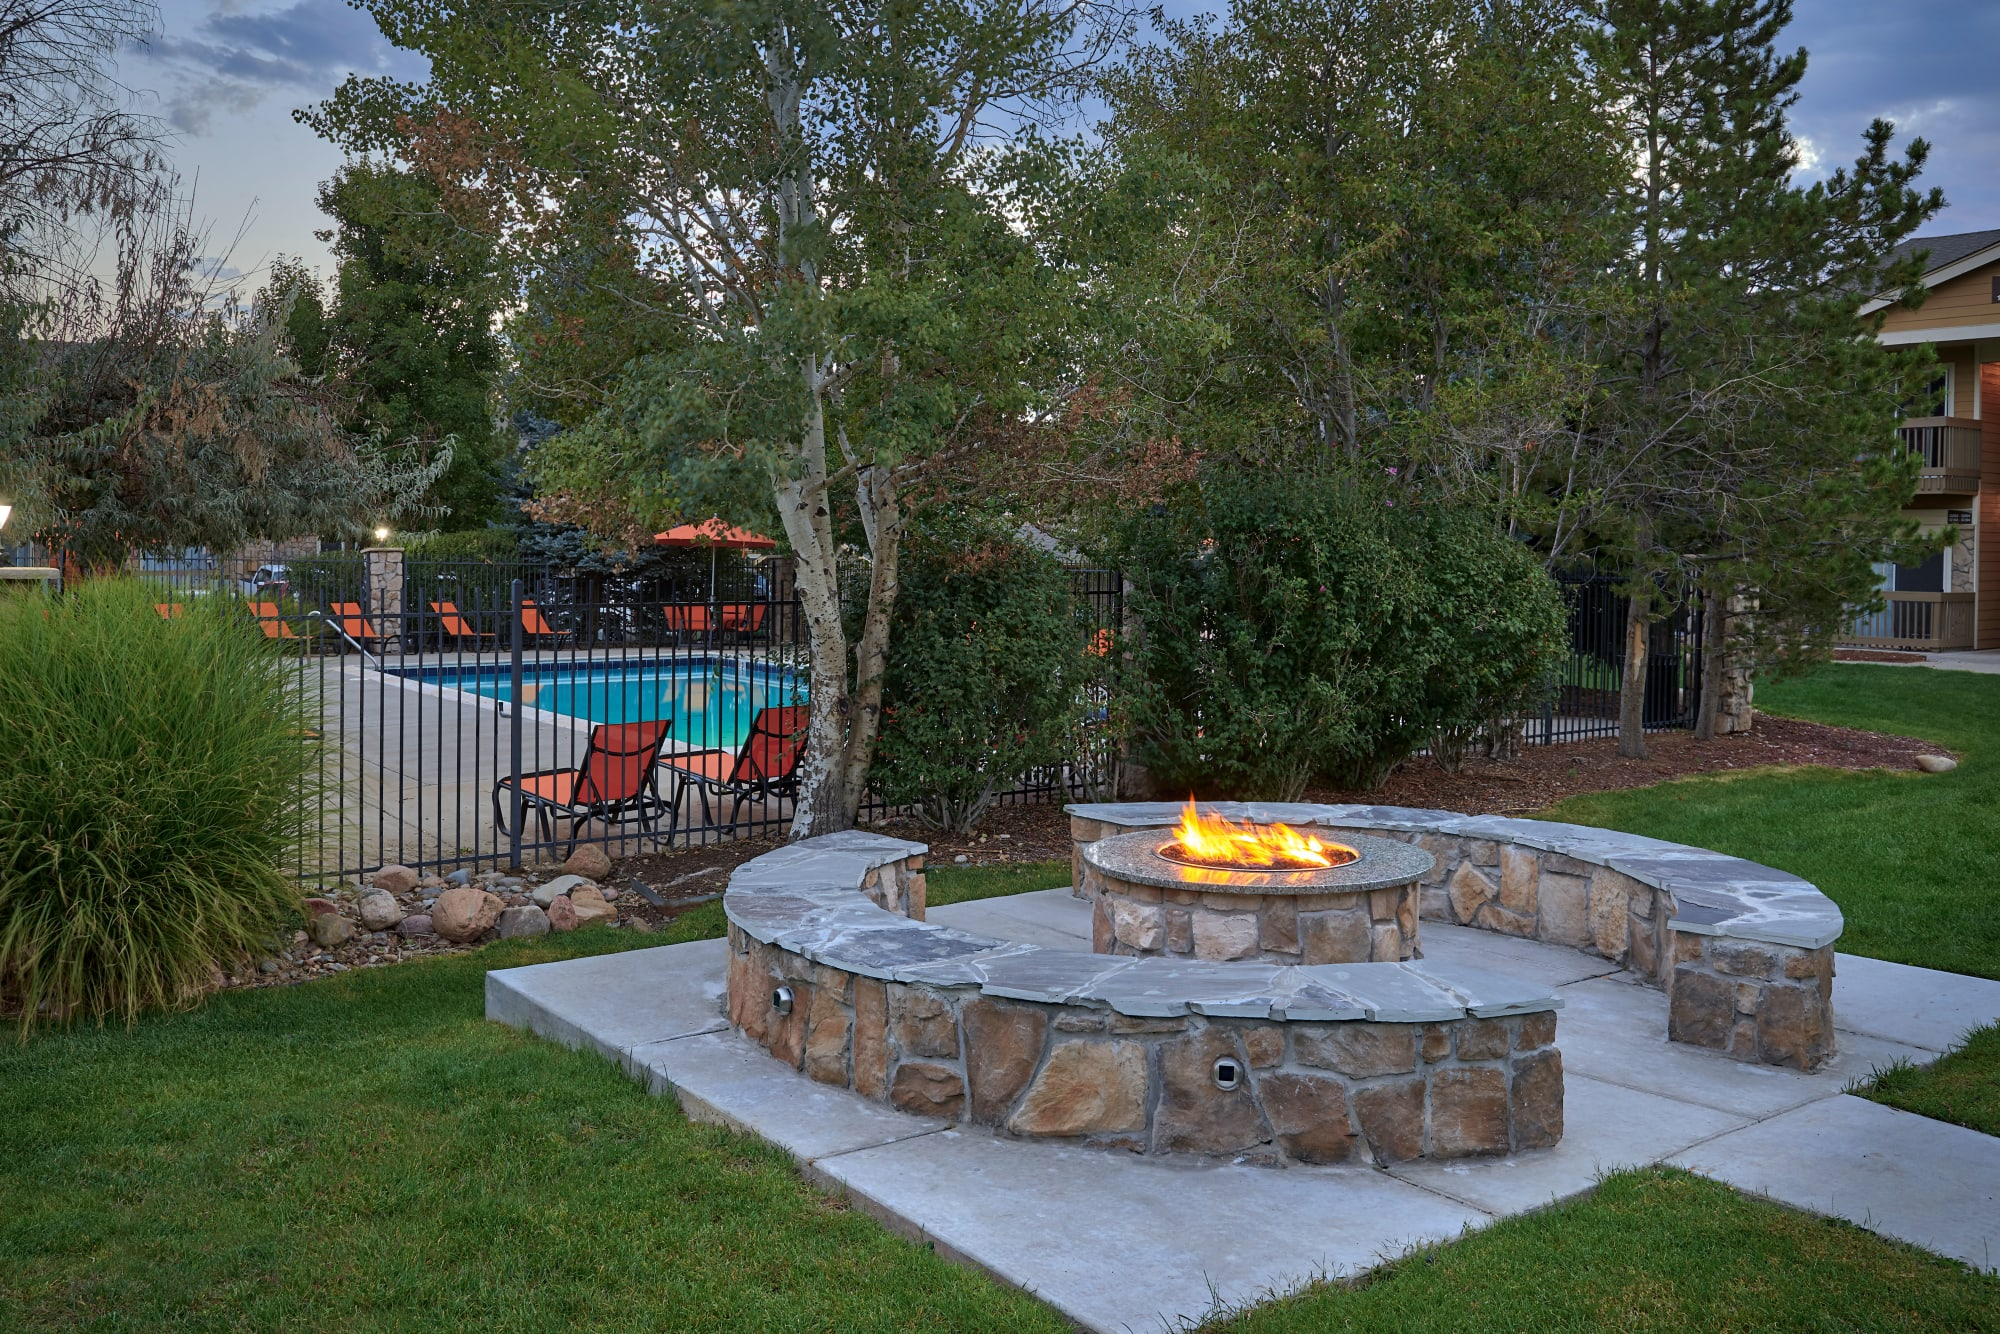 The fire pit lounge area at Crossroads at City Center Apartments in Aurora, Colorado